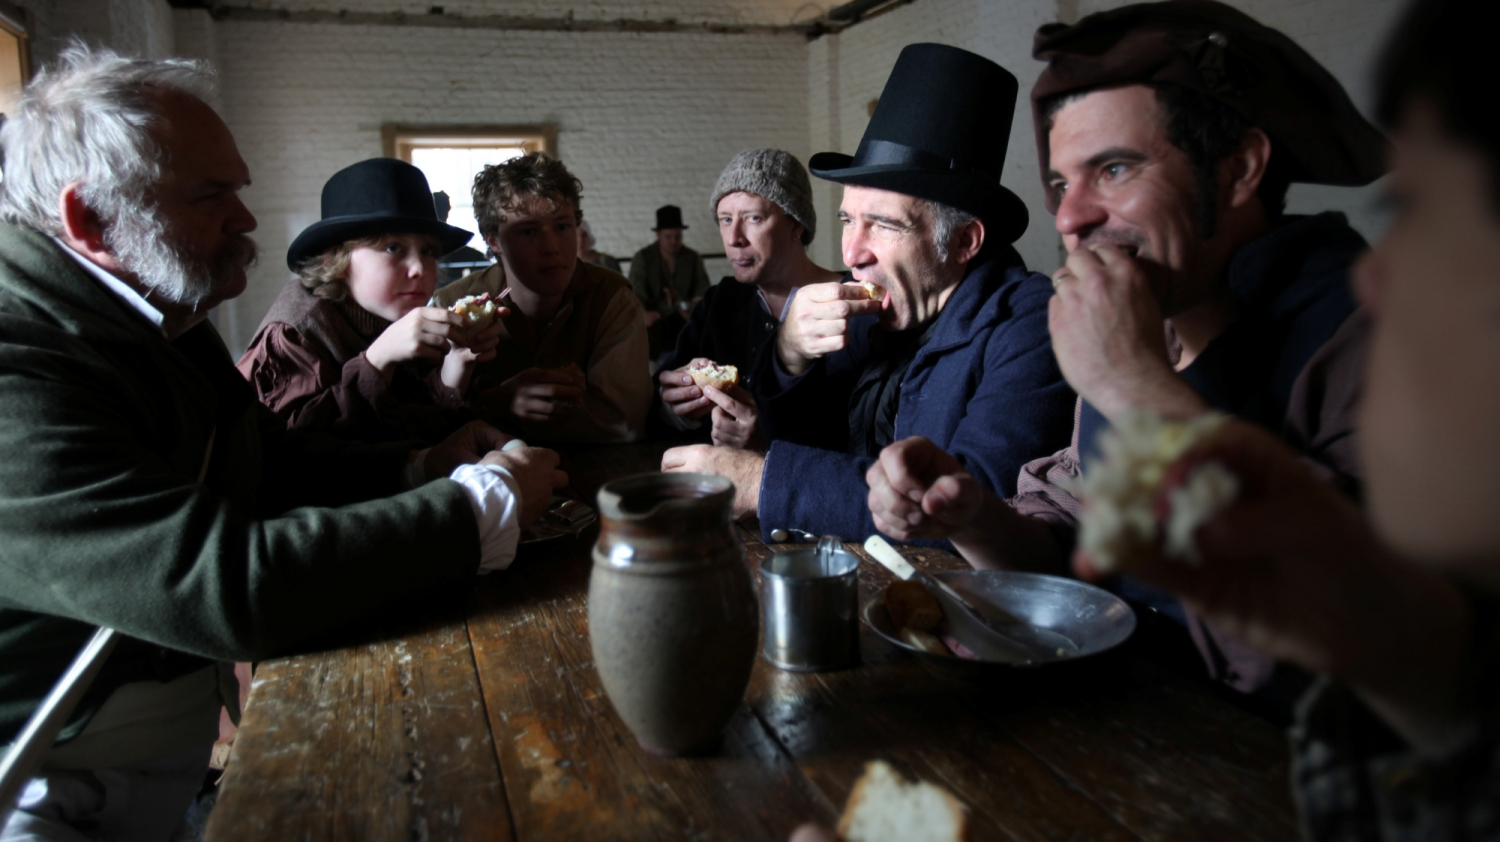 Men dressed as convicts seated at wooden table eating and drinking.